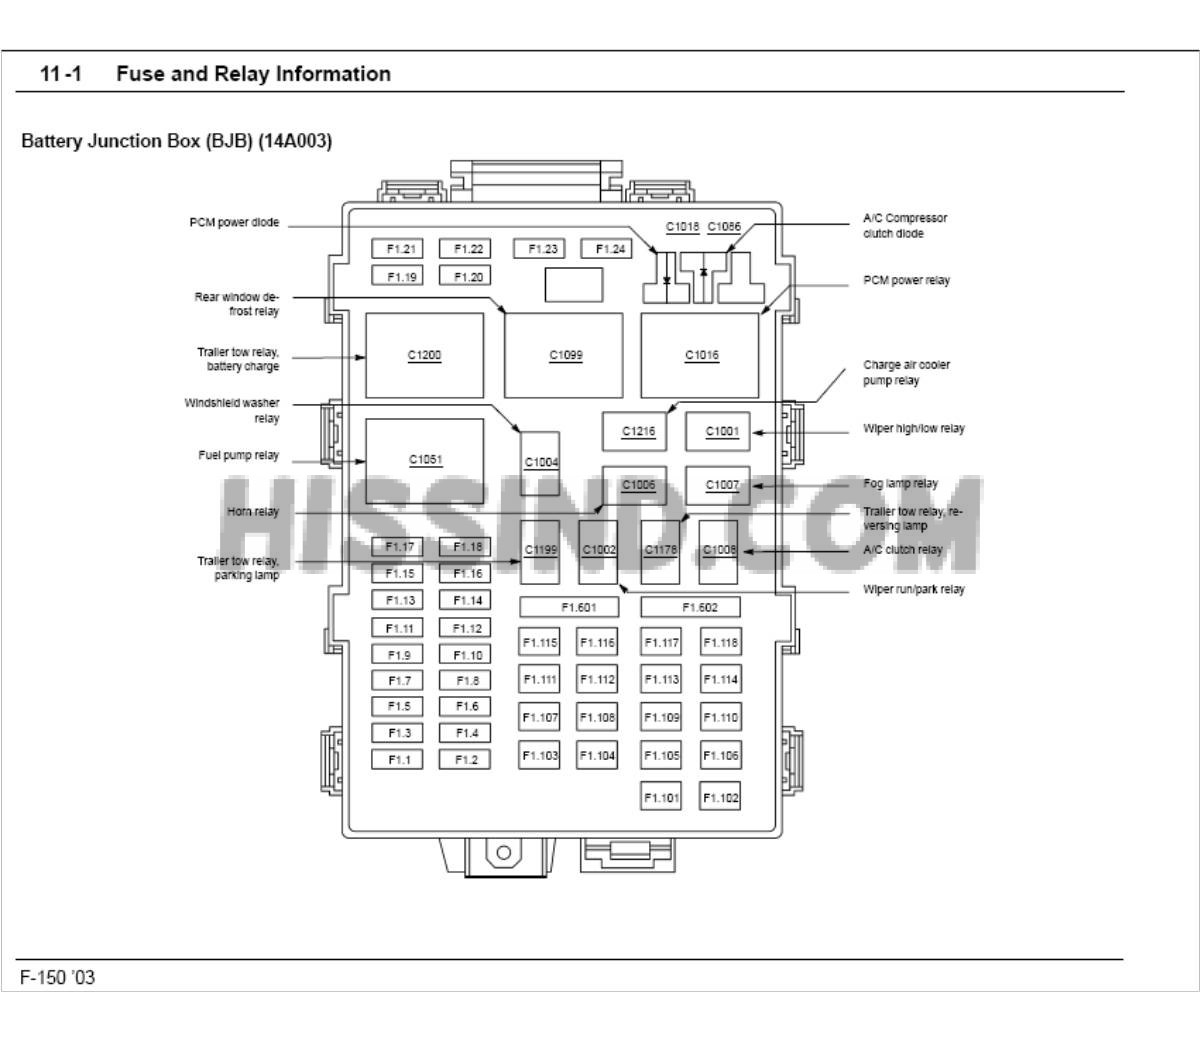 03 f150 fuse diagram enthusiast wiring diagrams 2003 ford f150 fuse box  diagram 2003 ford f150